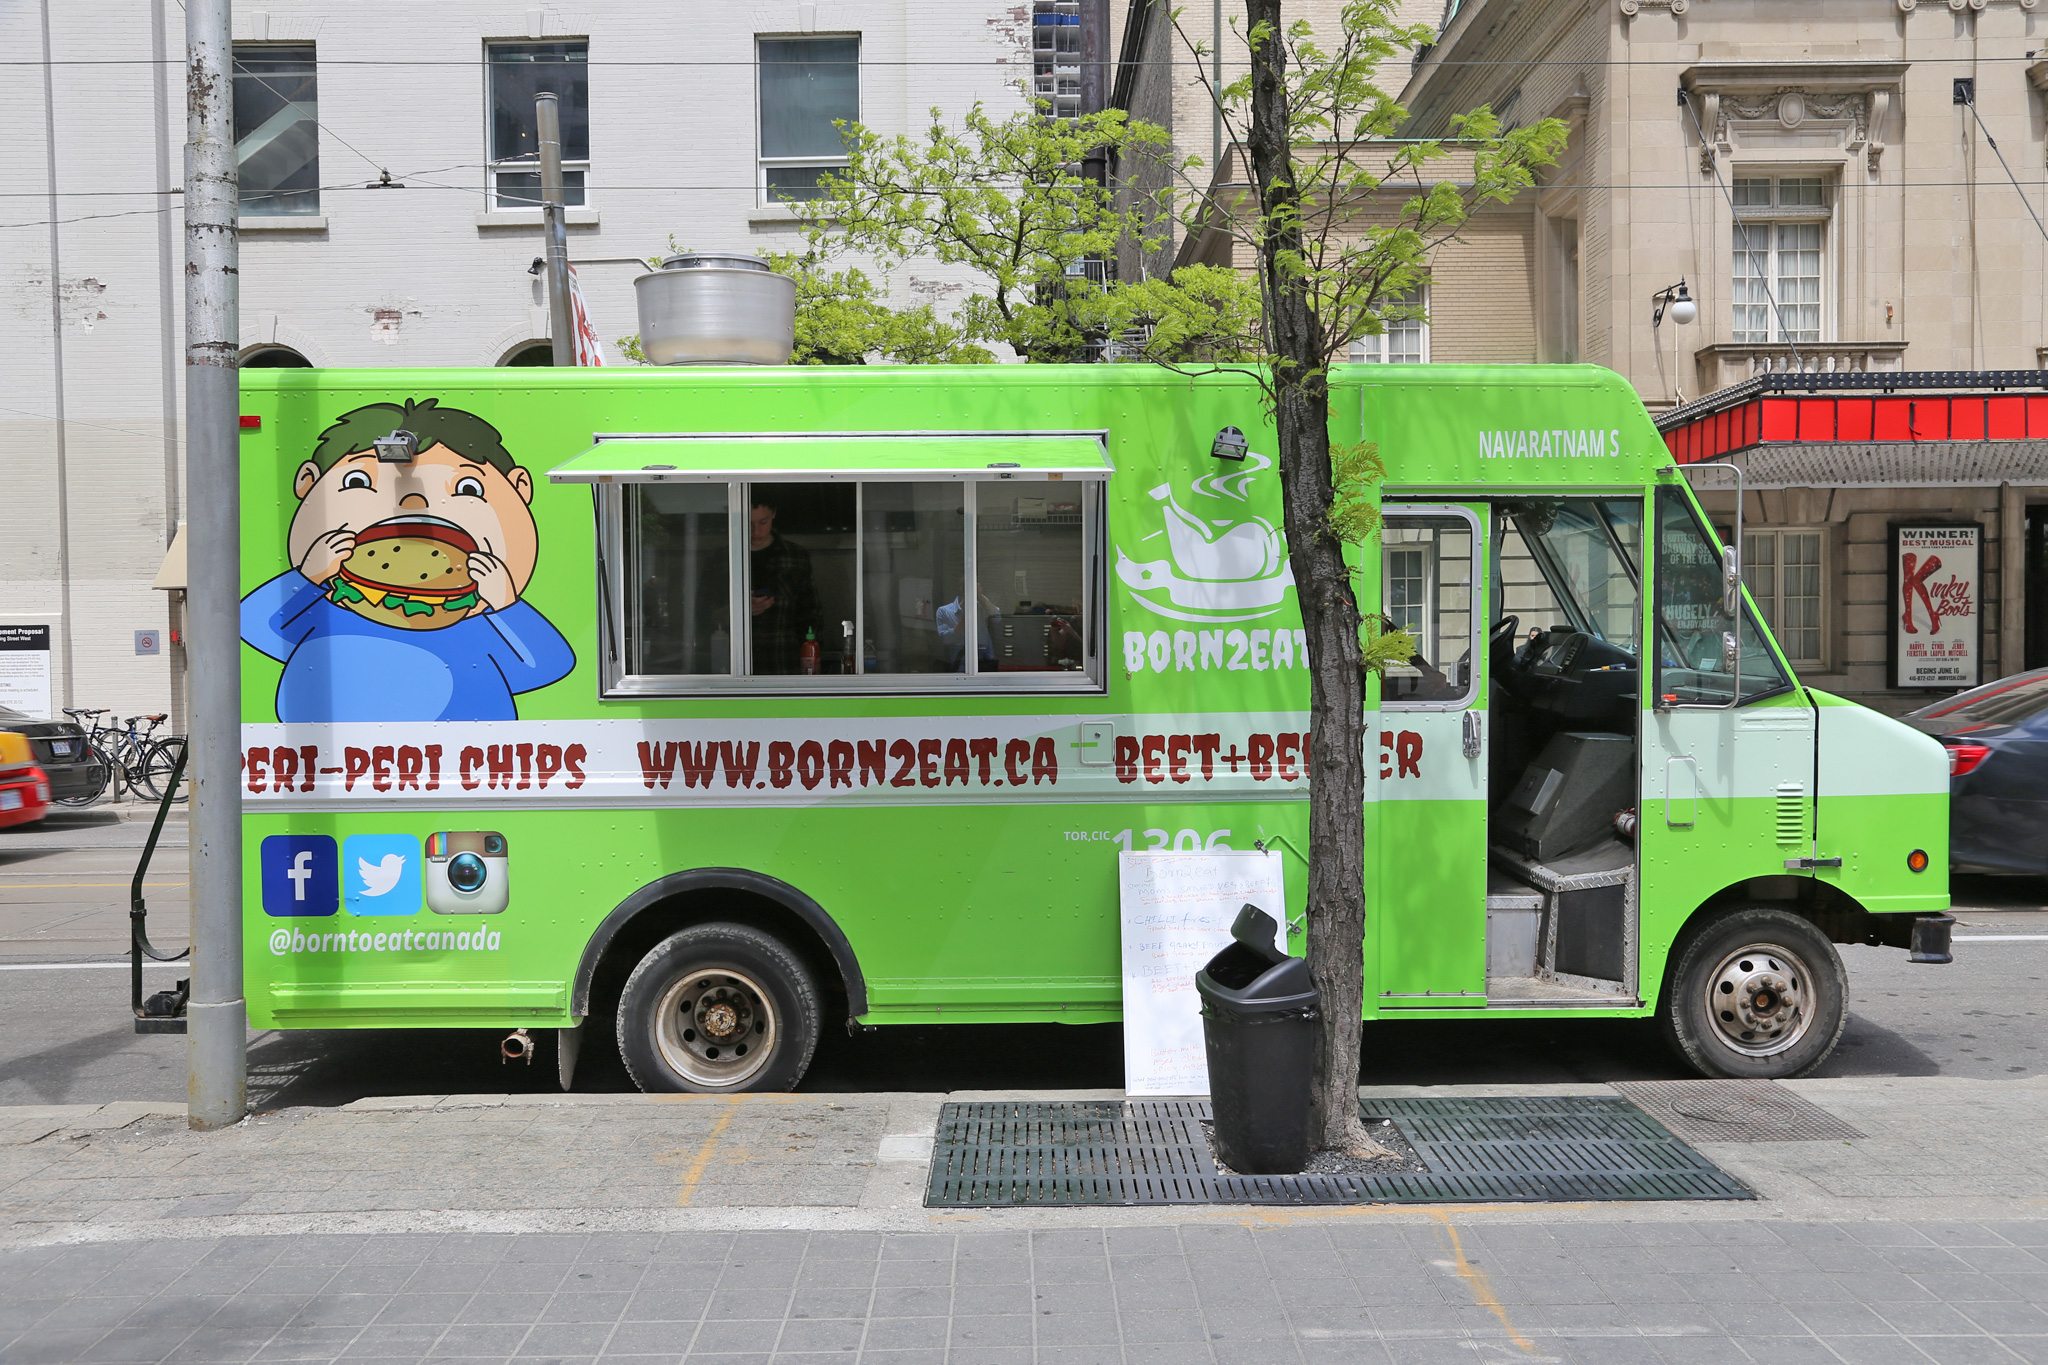 Born2Eat Is A Toronto Based Food Truck Bring Serving Up Classic Dishes Like Hamburgers And Hot Dogs Menu Items Include Their Infamous Beet Beef Burger